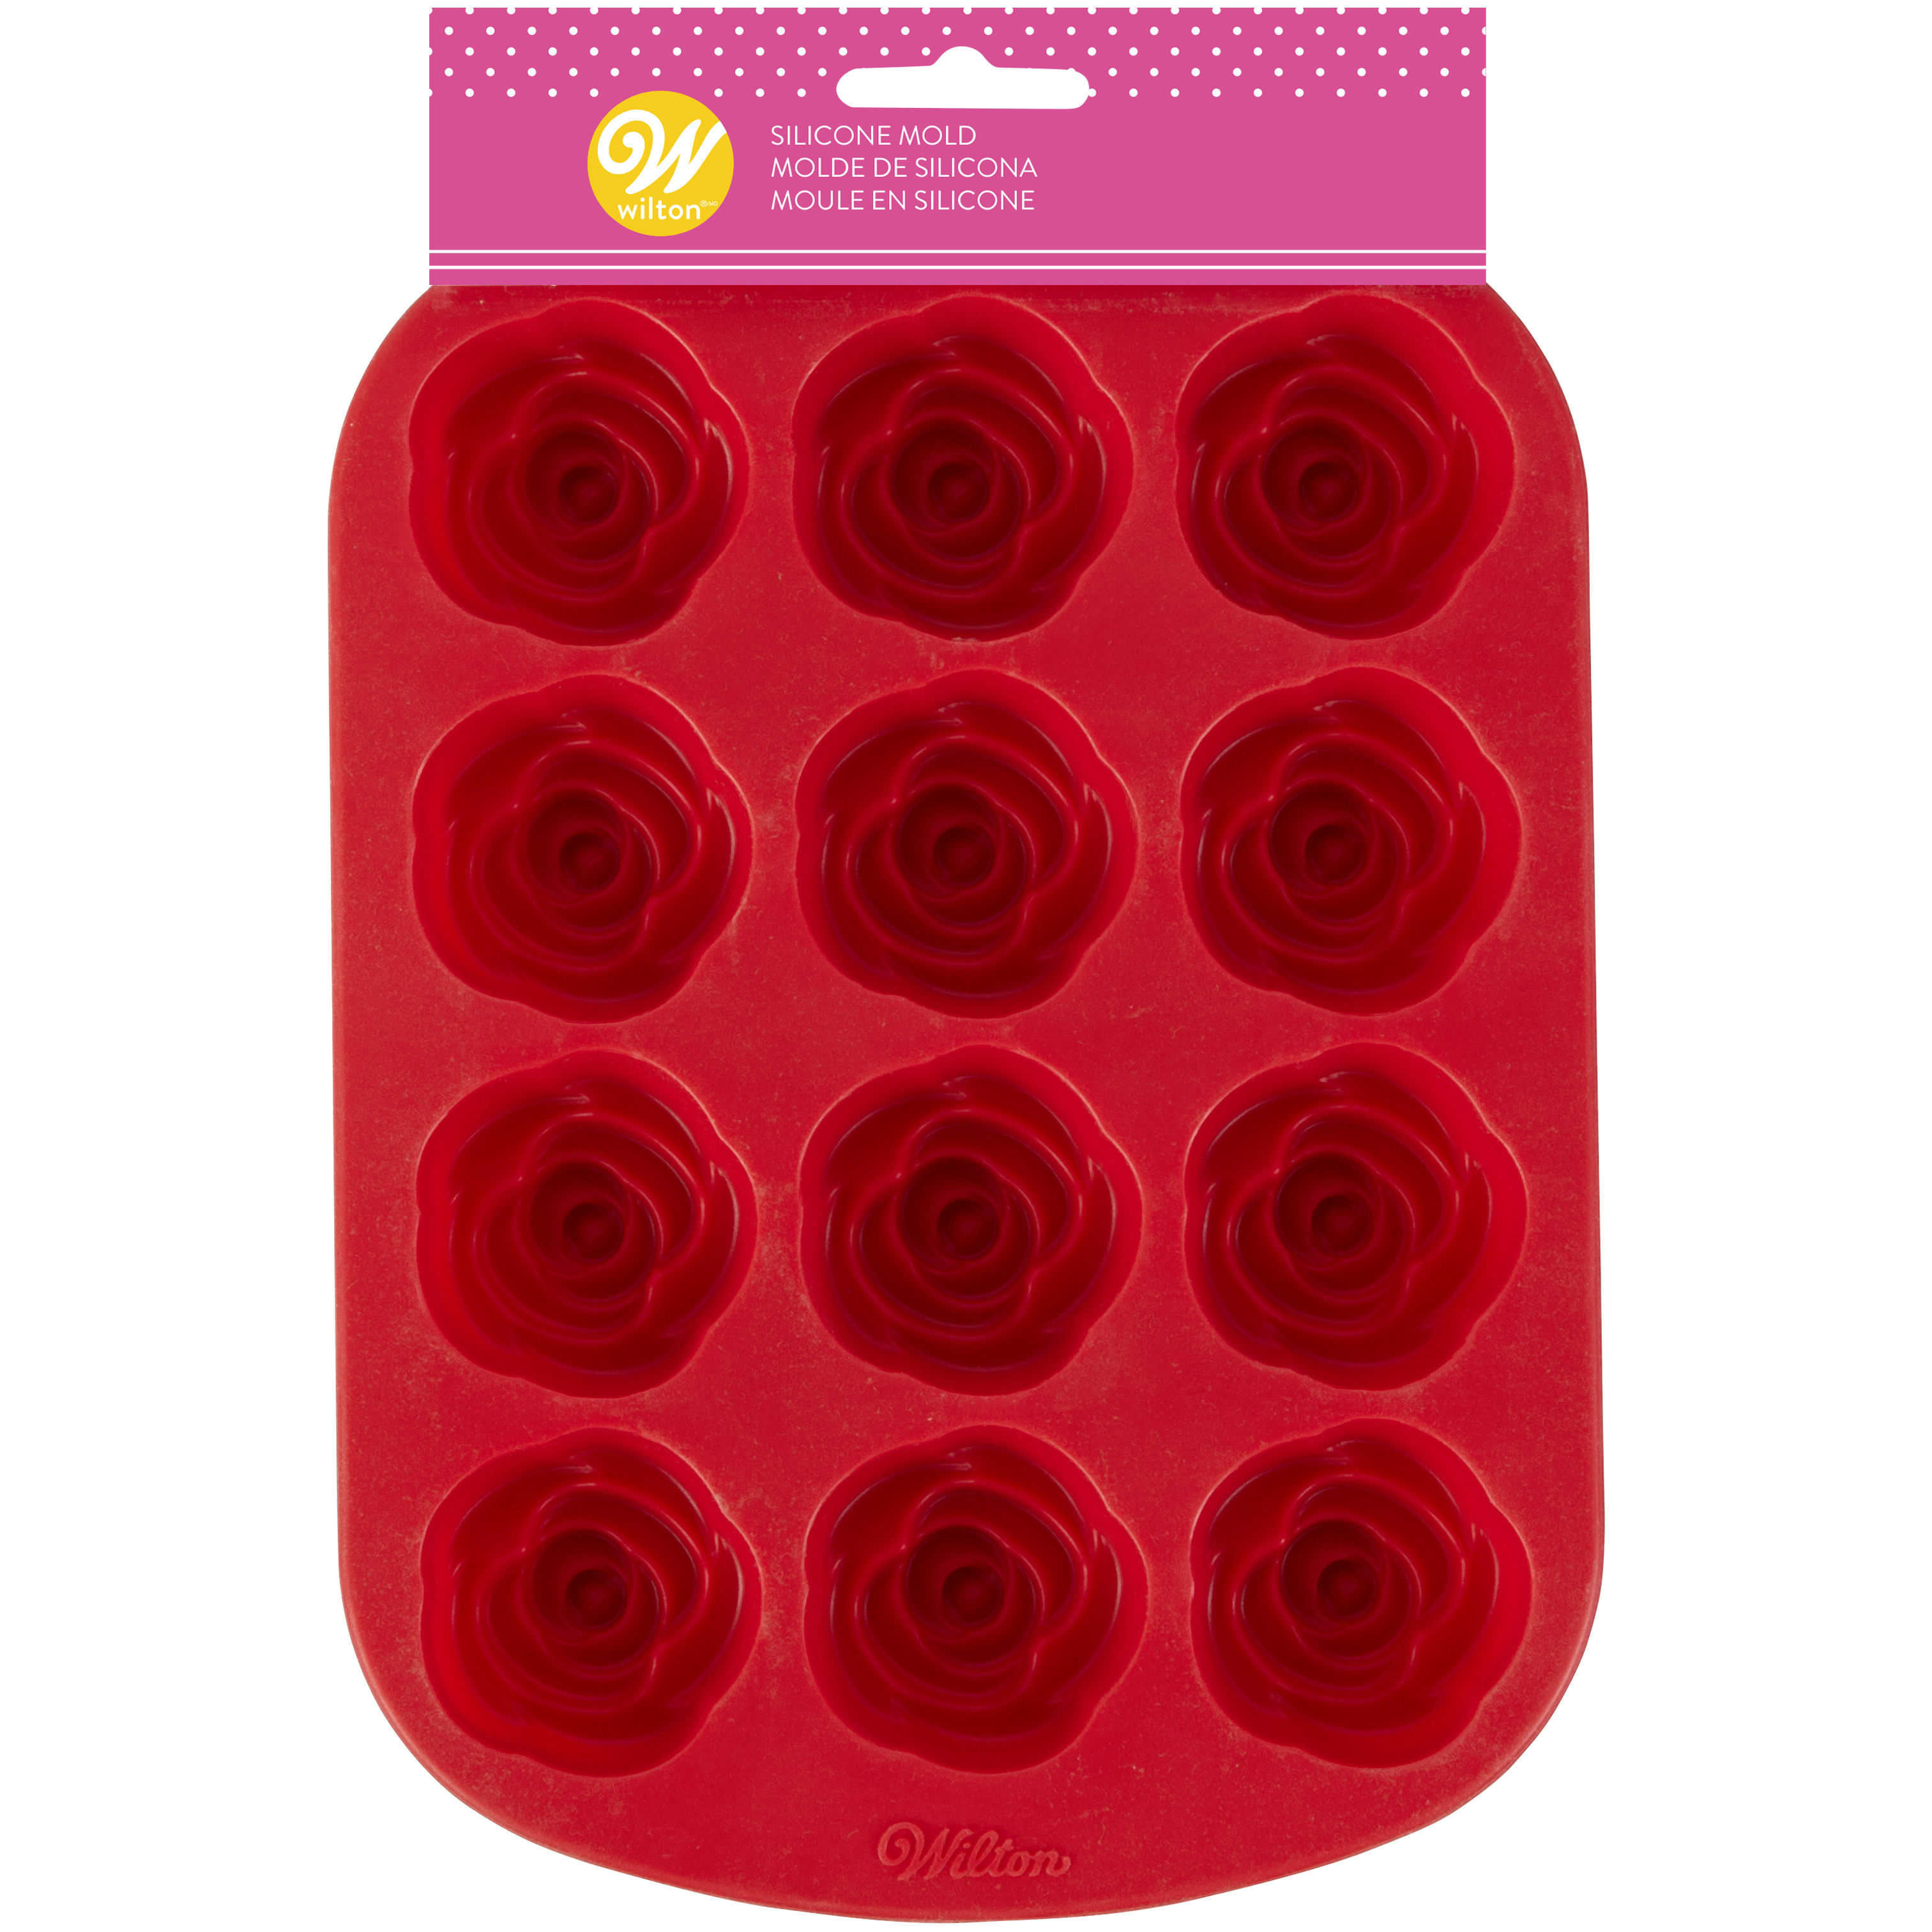 Wilton Valentine's Day Rose Silicone Mold, 12 cavity by Wilton Industries Inc.